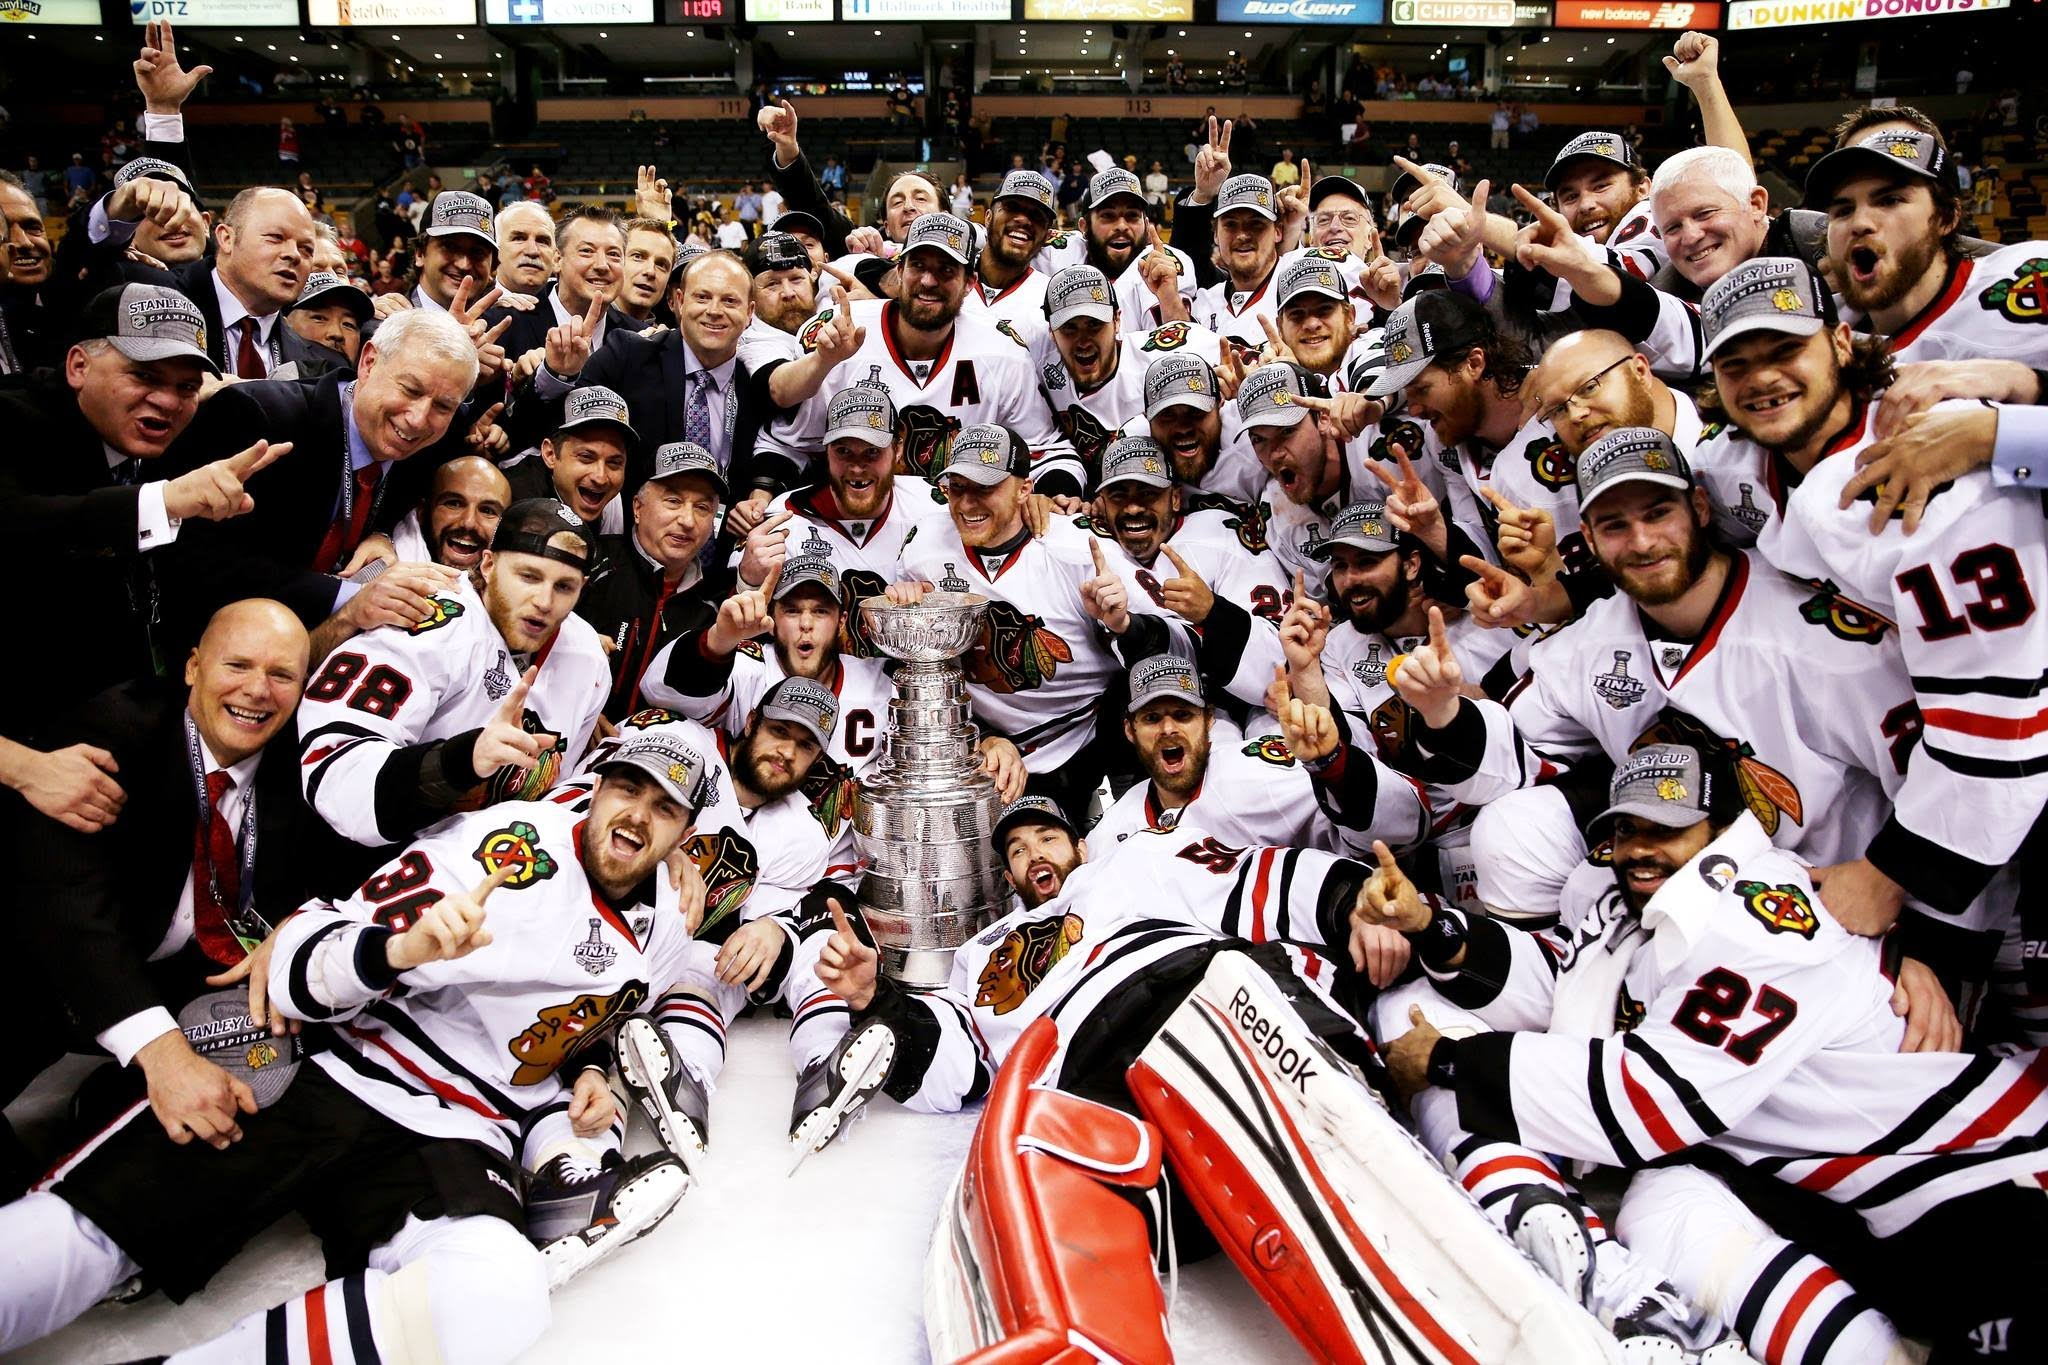 Chicago Blackhawks Wallpaper Download cool HD wallpapers here 2048x1365